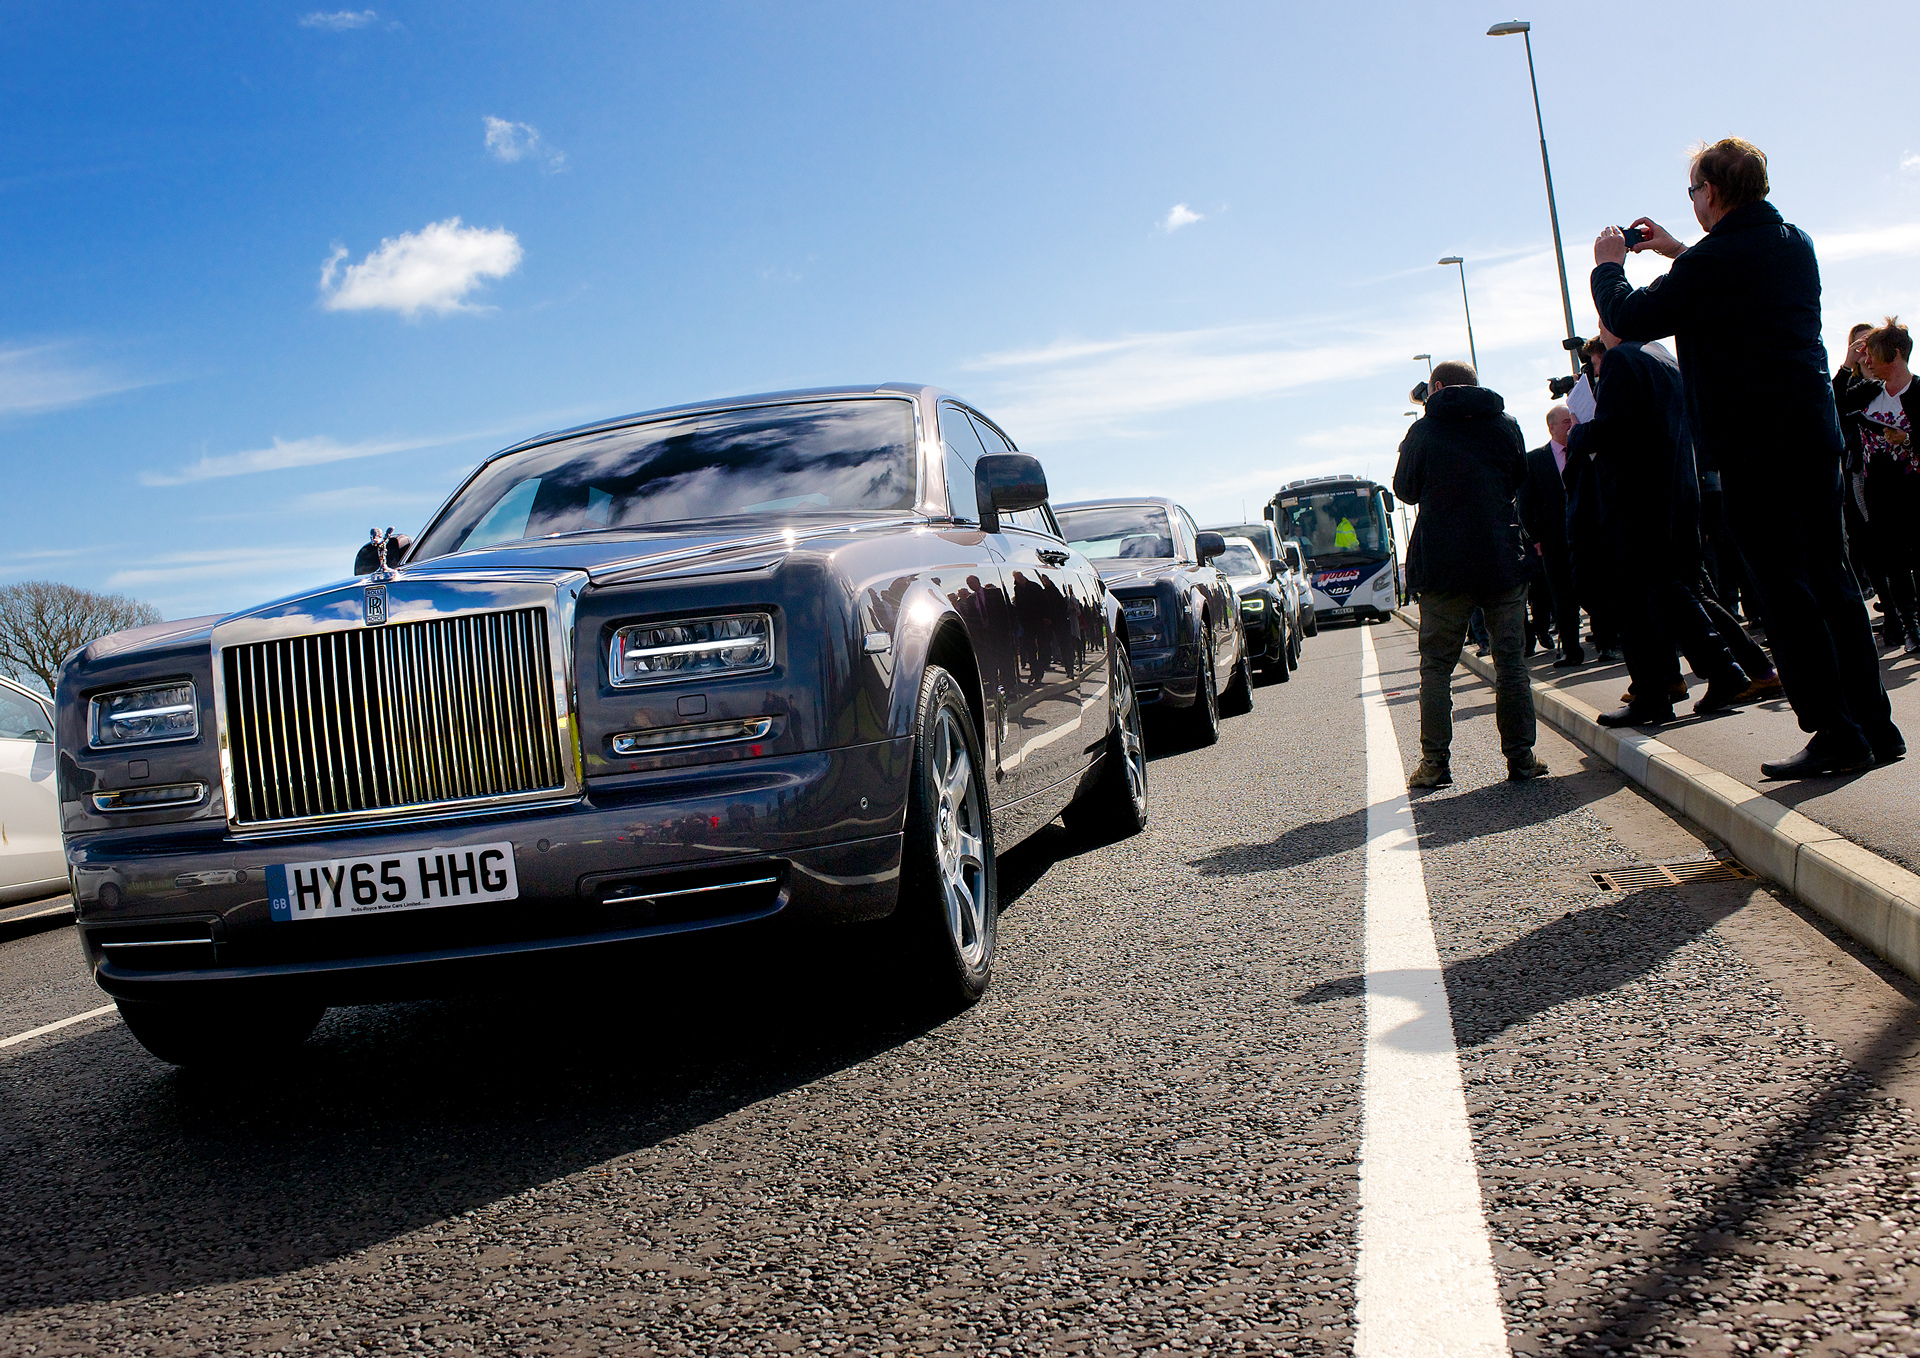 Rolls-Royce Motor Cars Leads Celebration at the Opening of the Bognor Regis North Relief Road © BMW AG